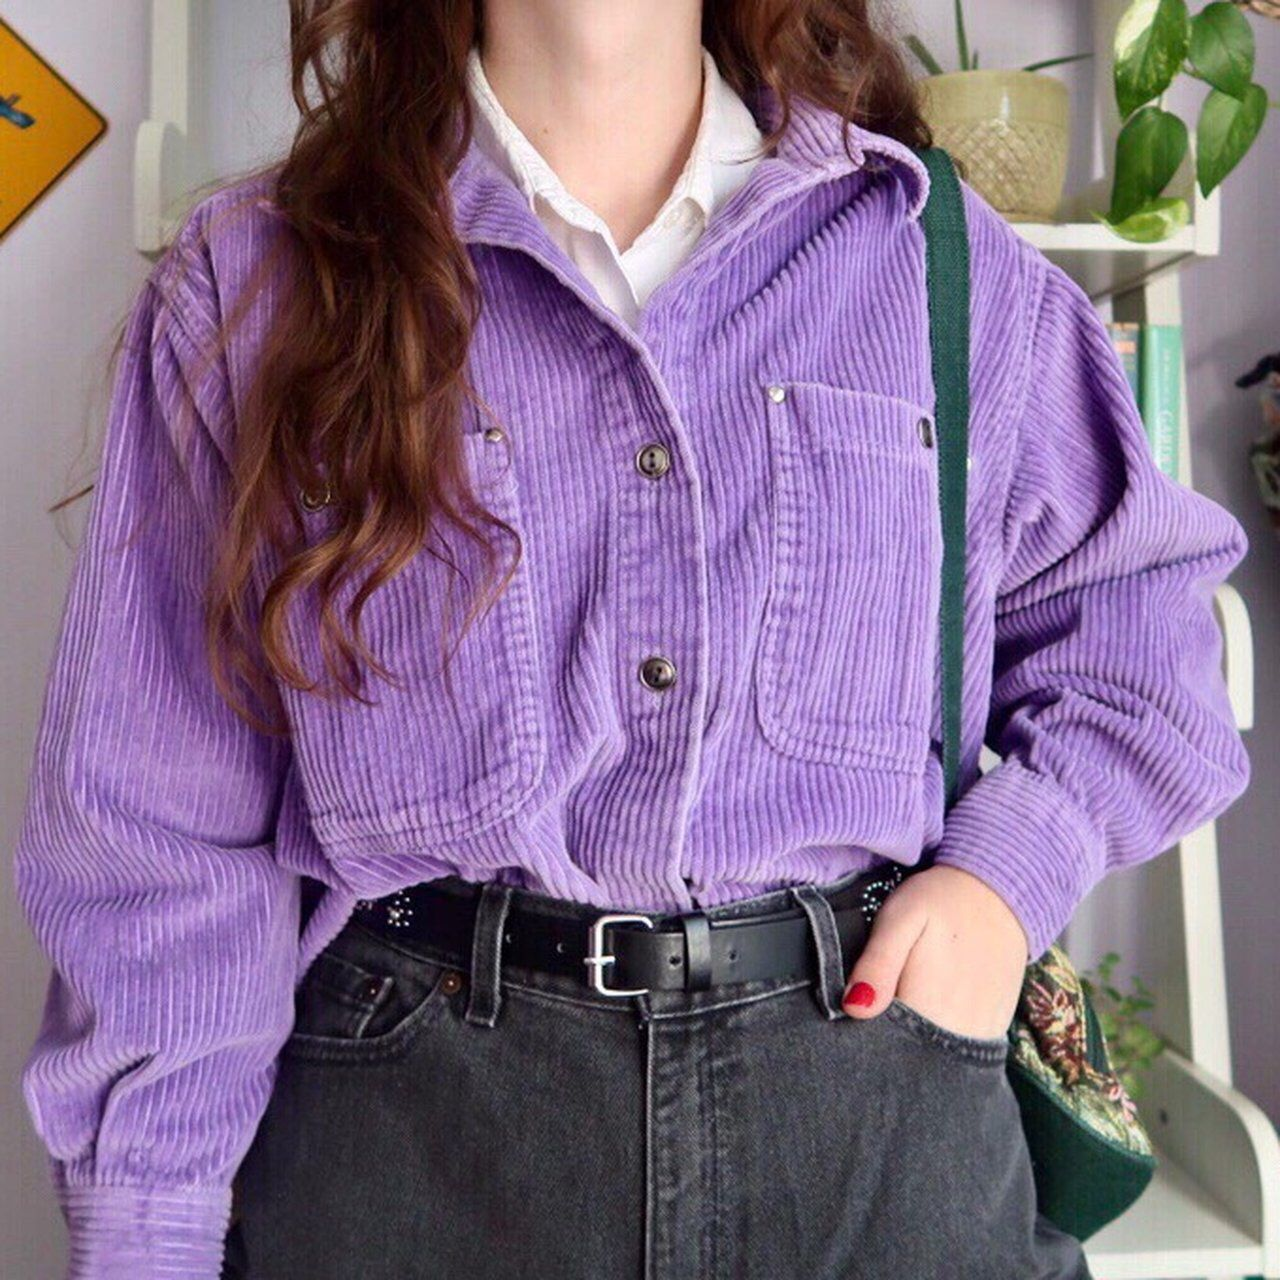 04e7337ff Pin by Maddi on album comors in 2019 | Fashion, Vintage outfits ...